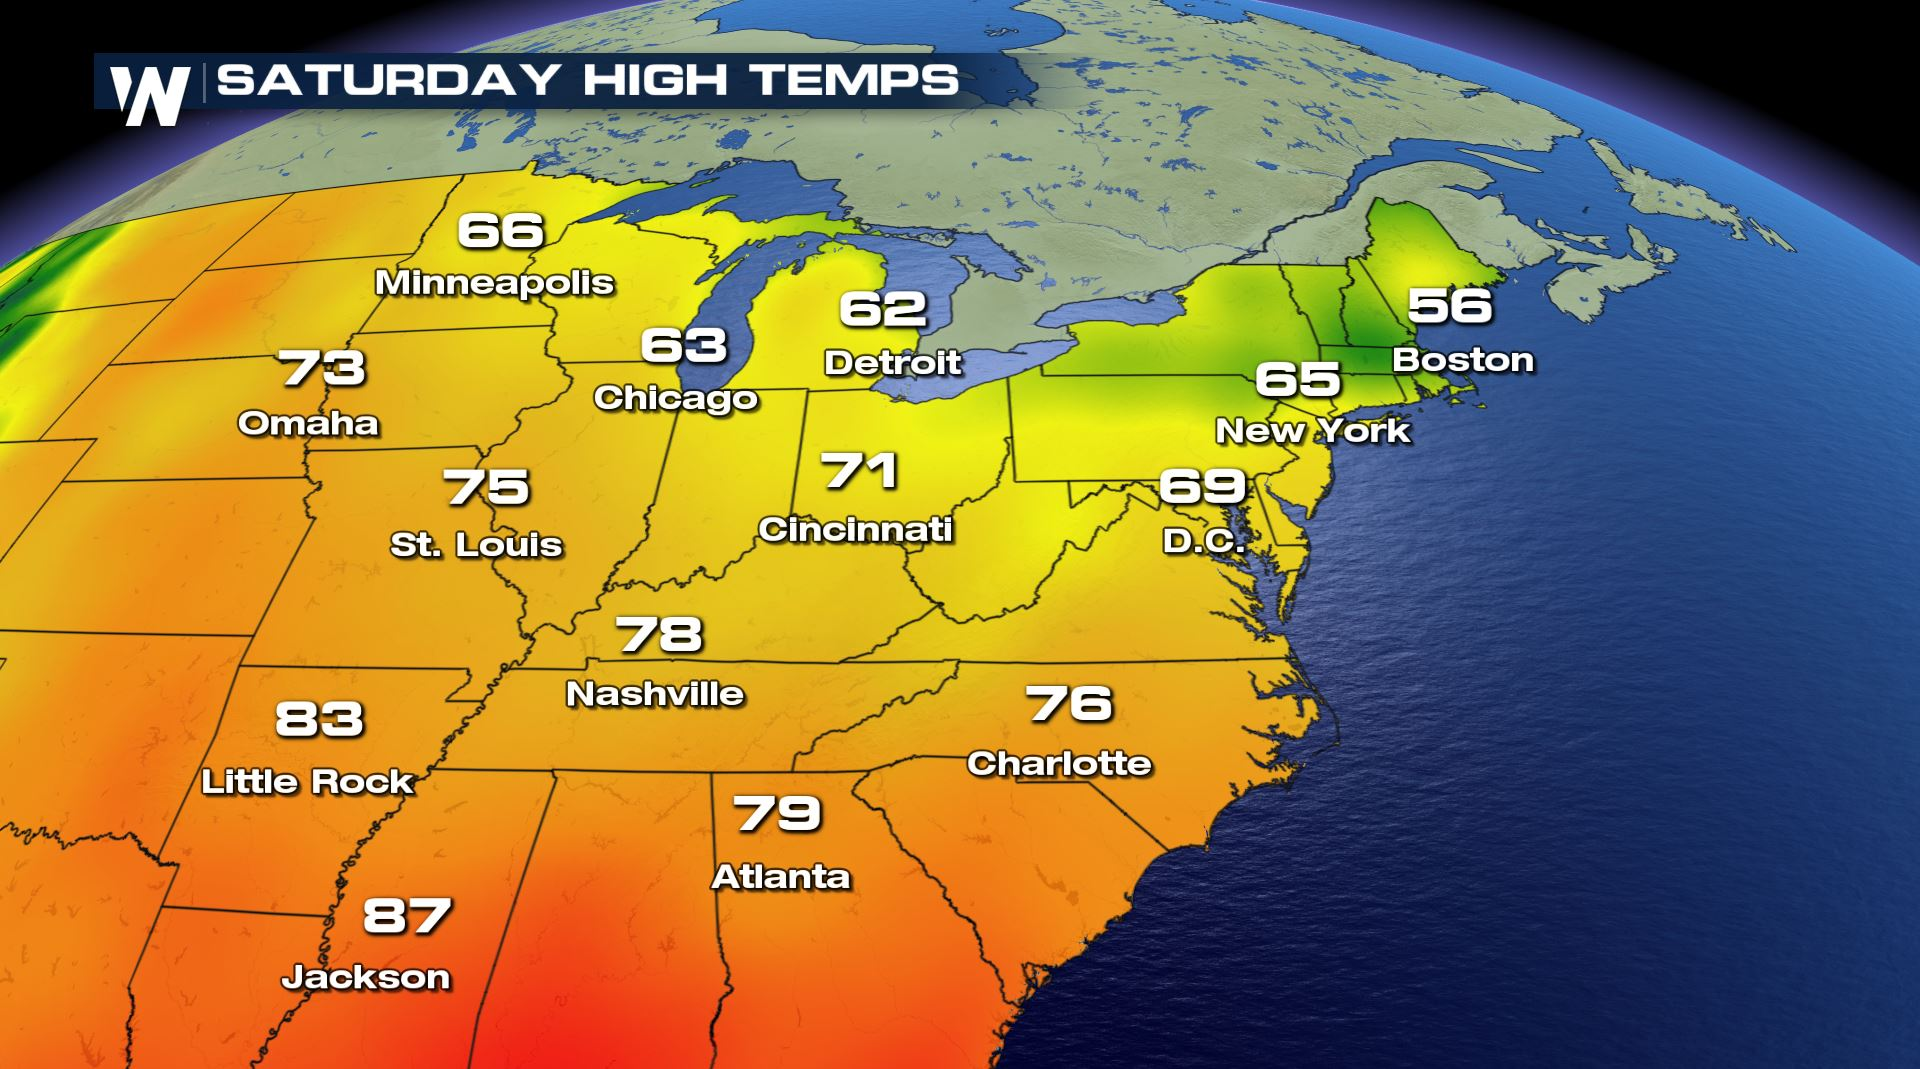 Cooler Weather Is Coming To The Northeast